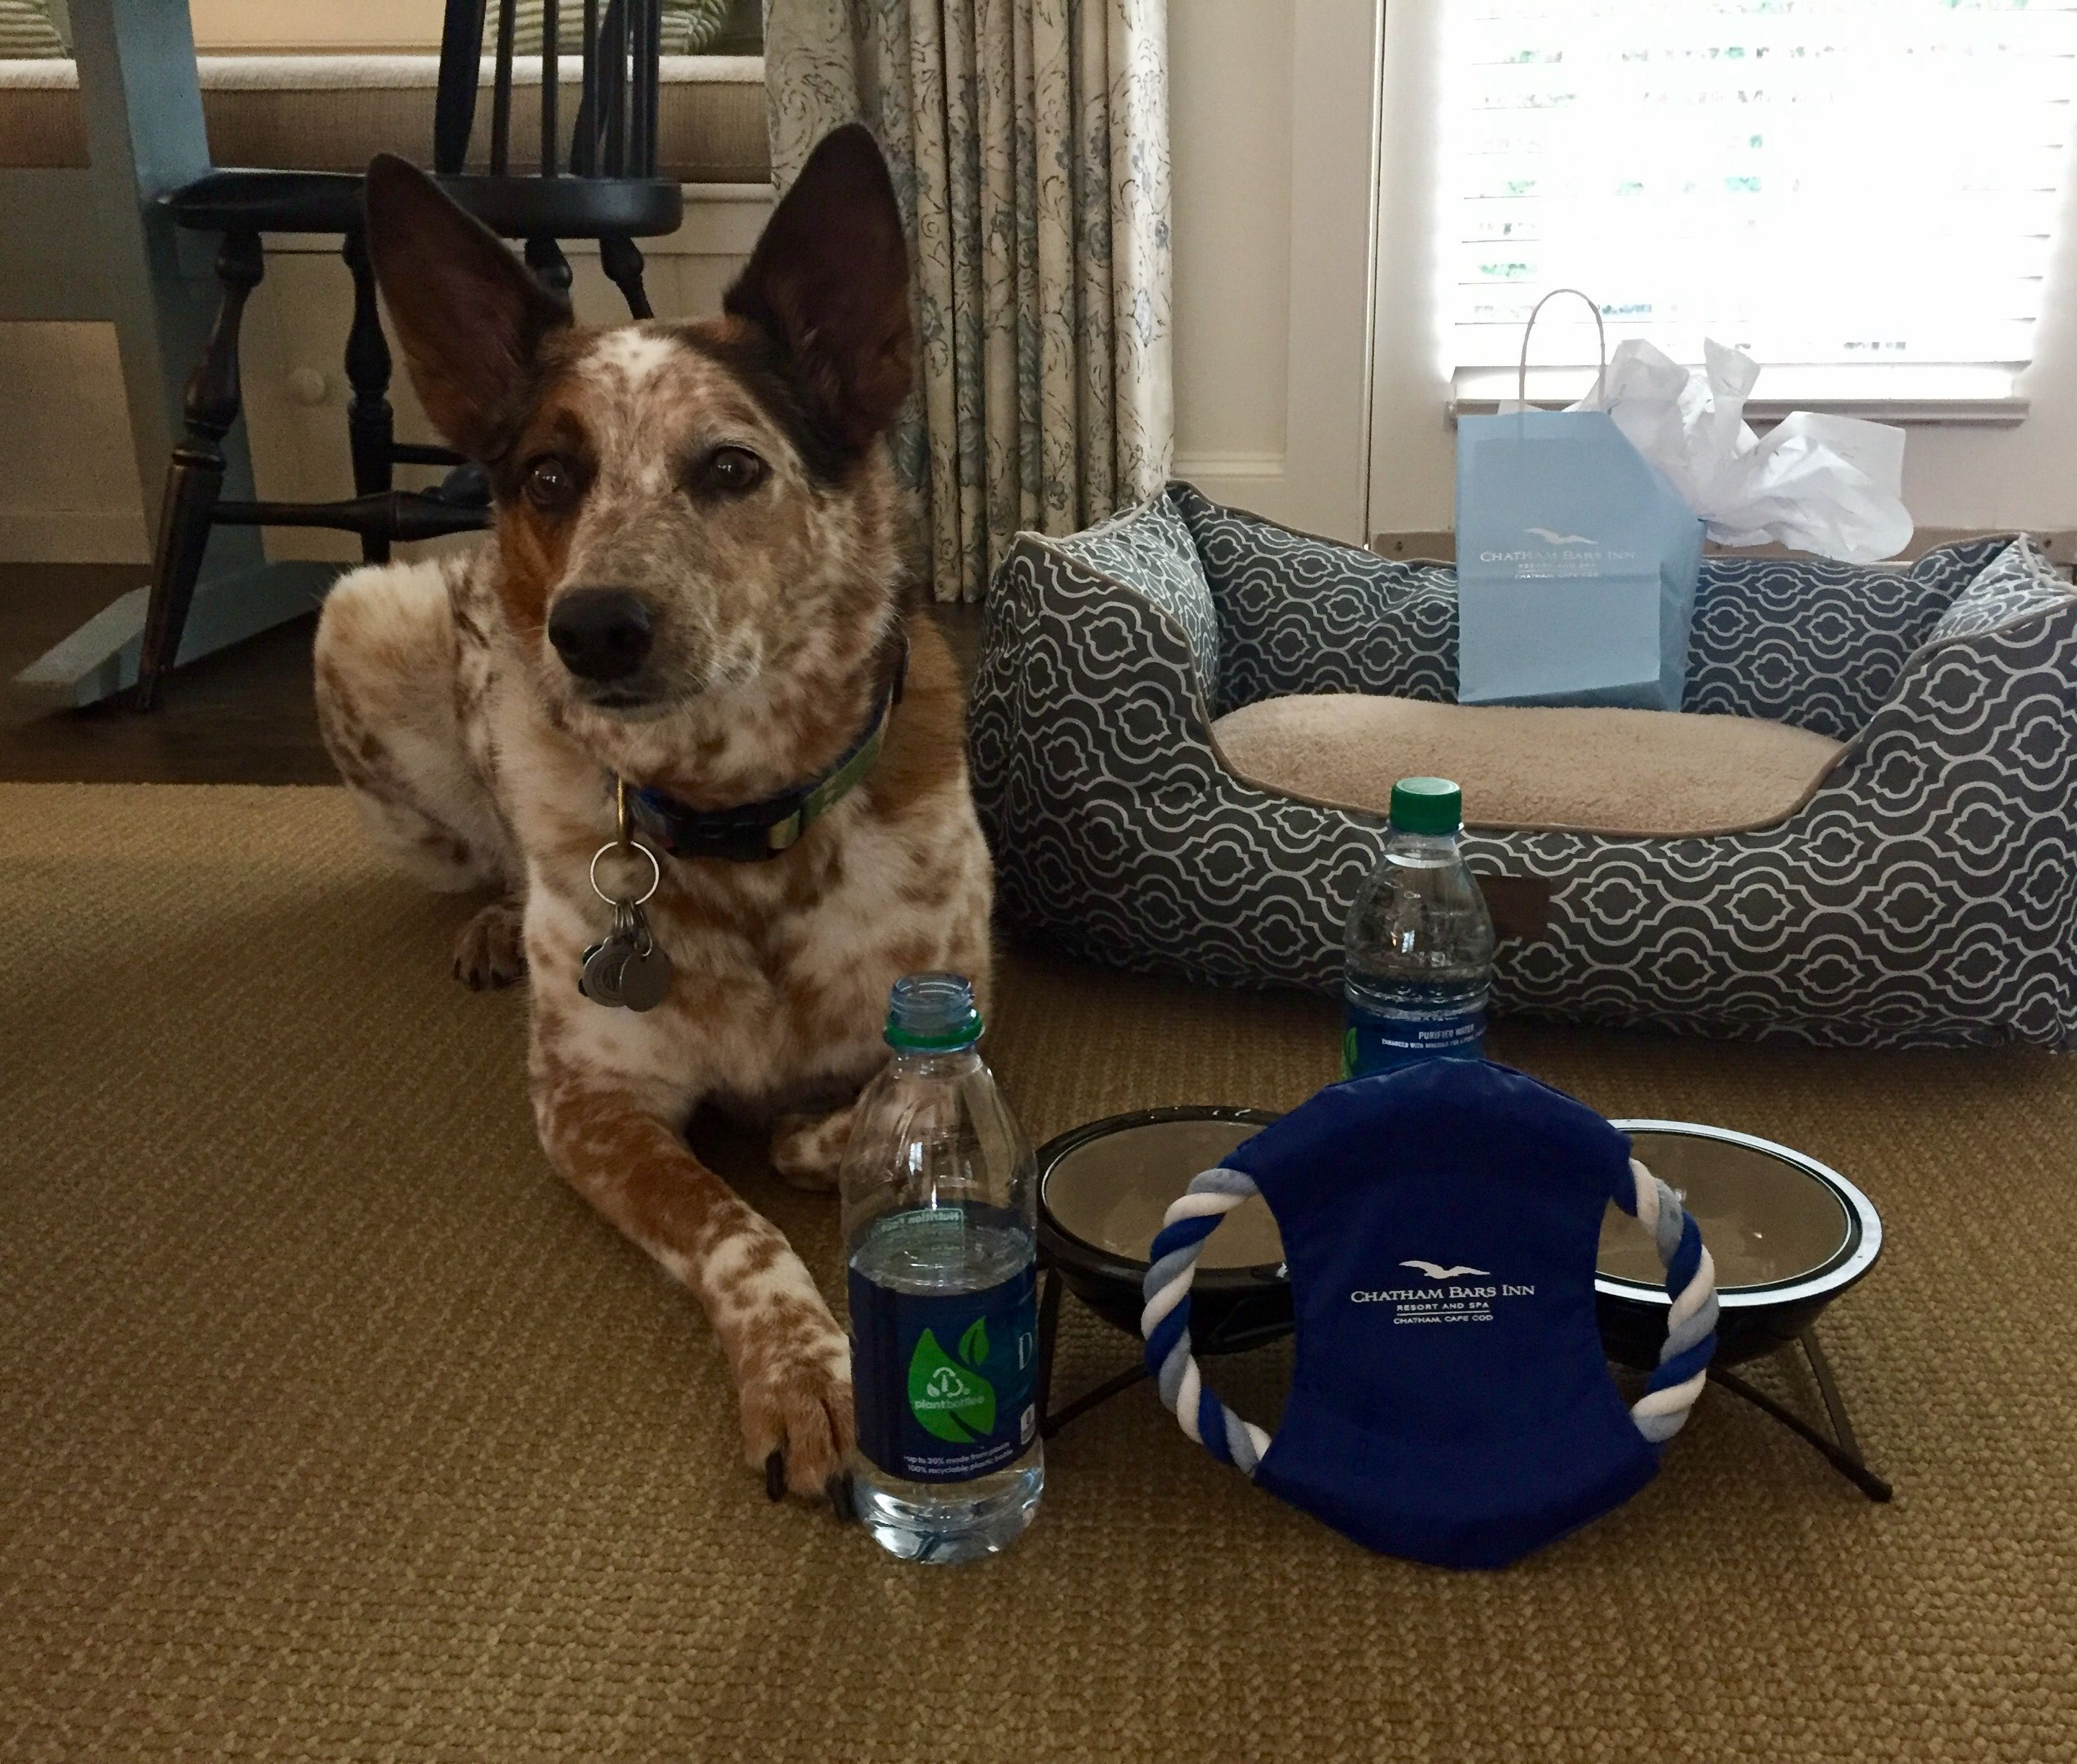 Pet Friendly Accommodations At Chatham Bars Inn On Cape Cod